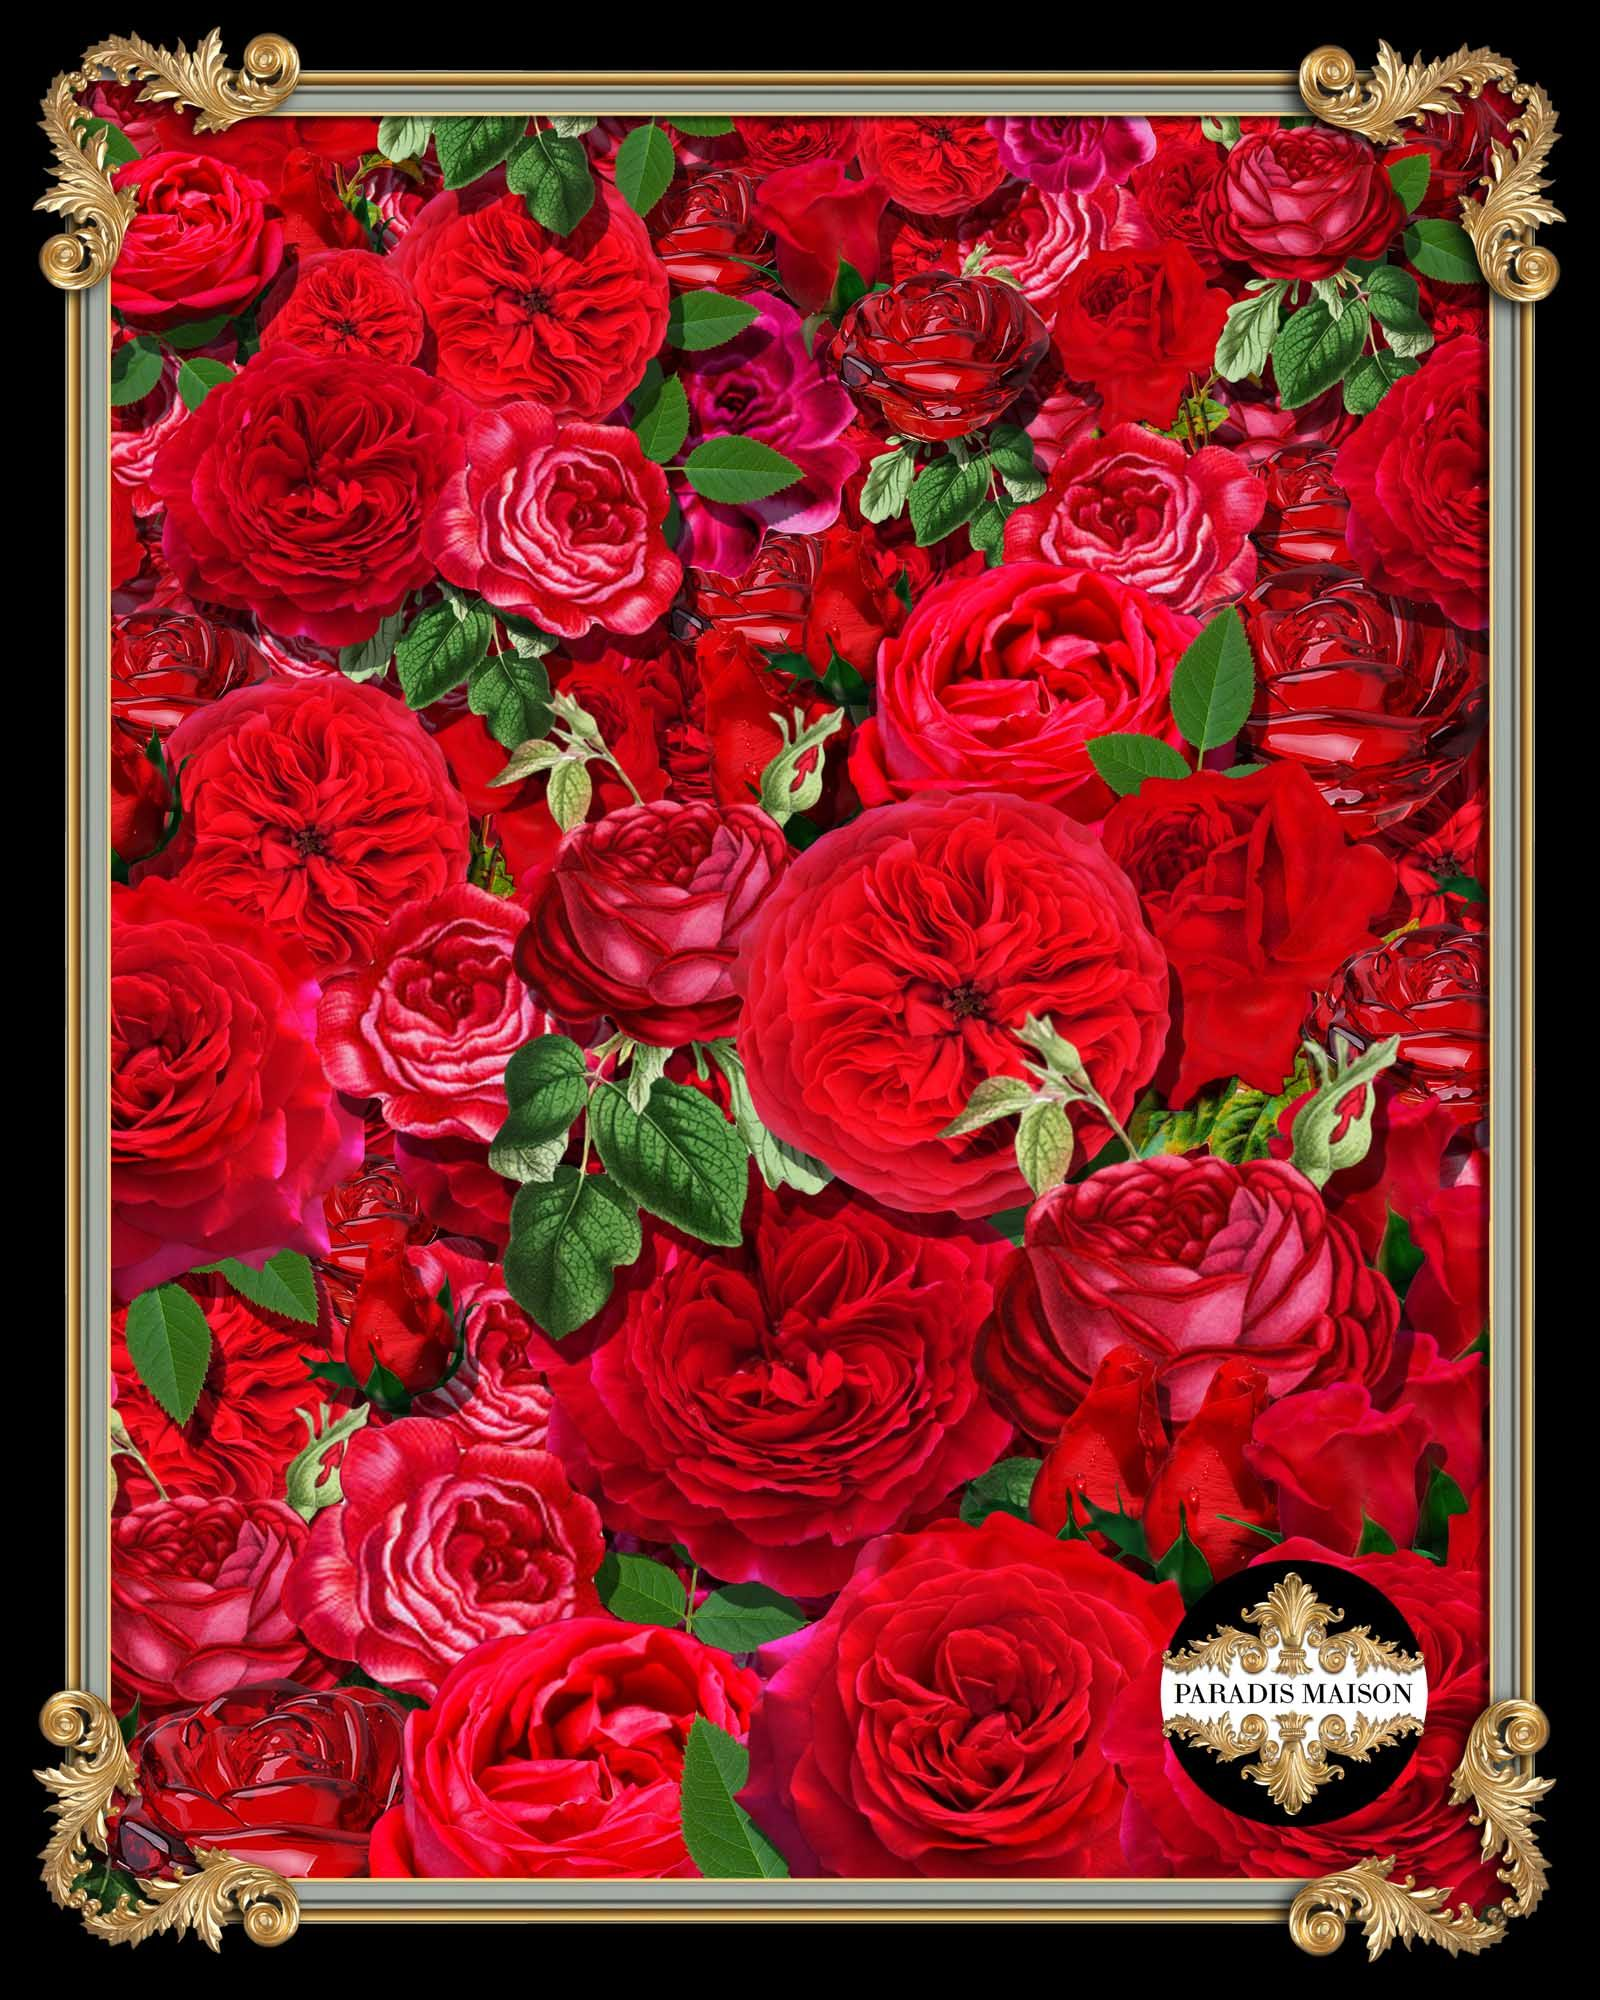 Have To Have The Blanket Of This Print Red Rose Fabric Decor